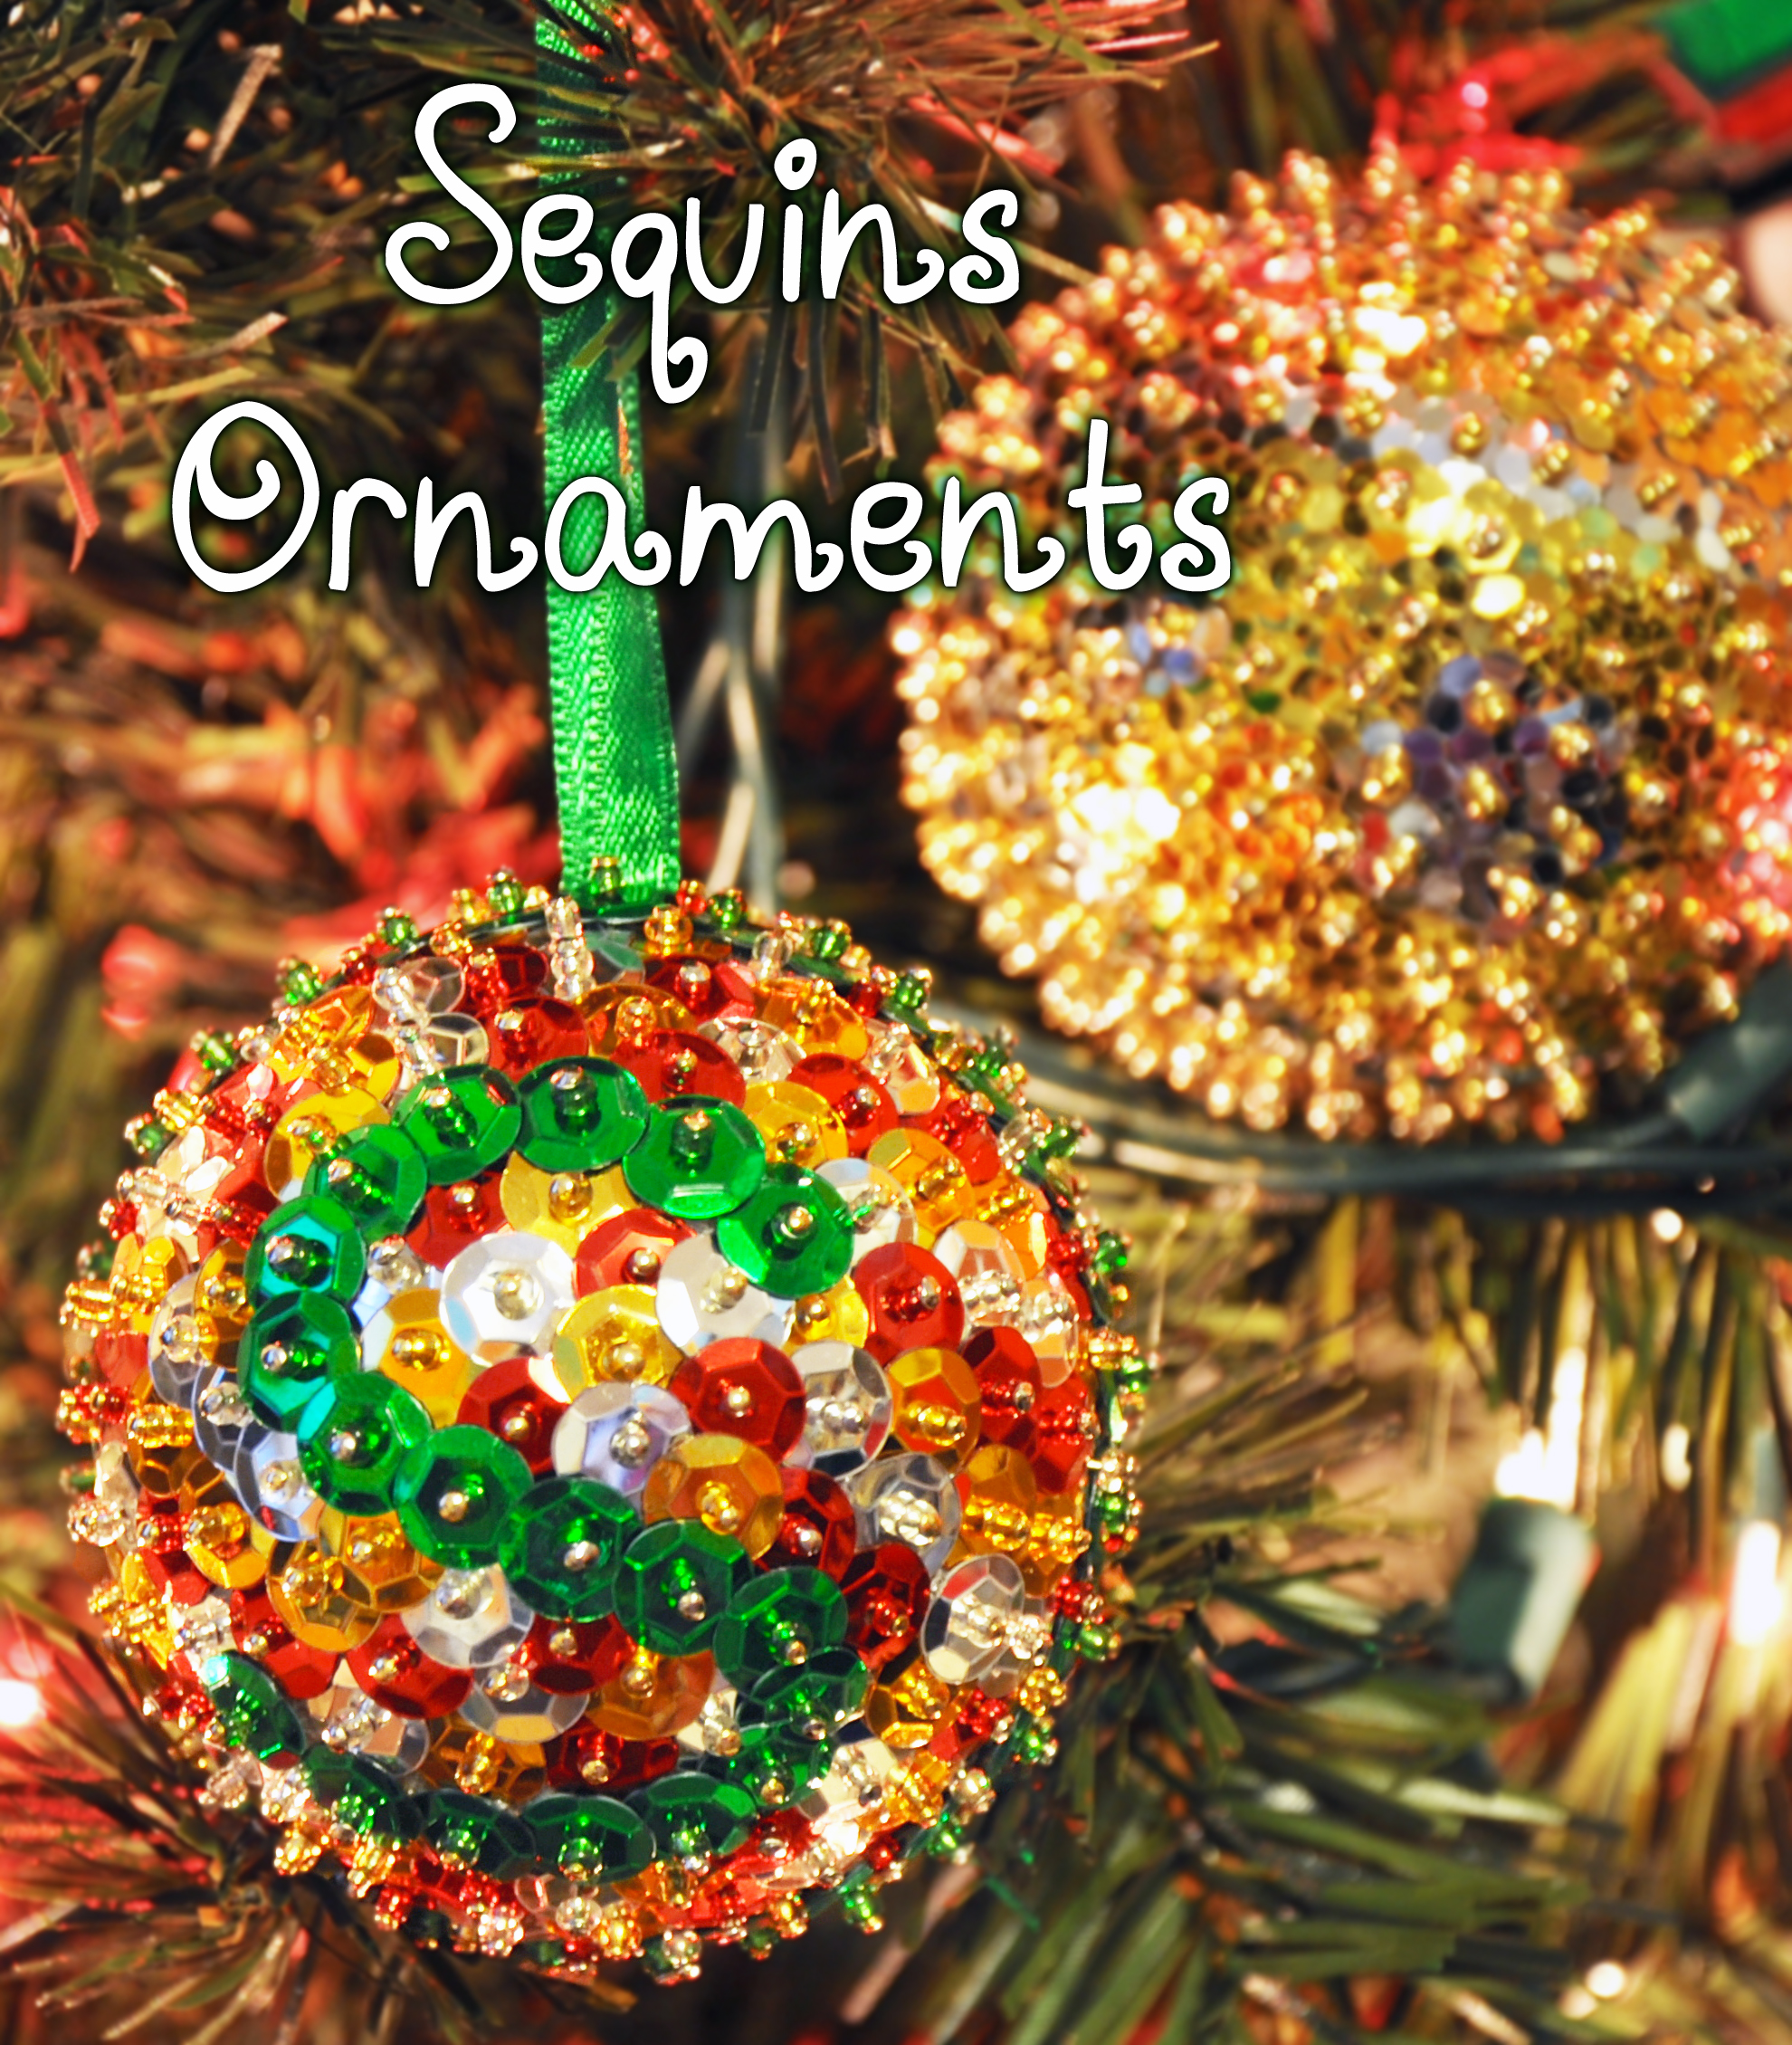 Picture of Sequins Ornaments